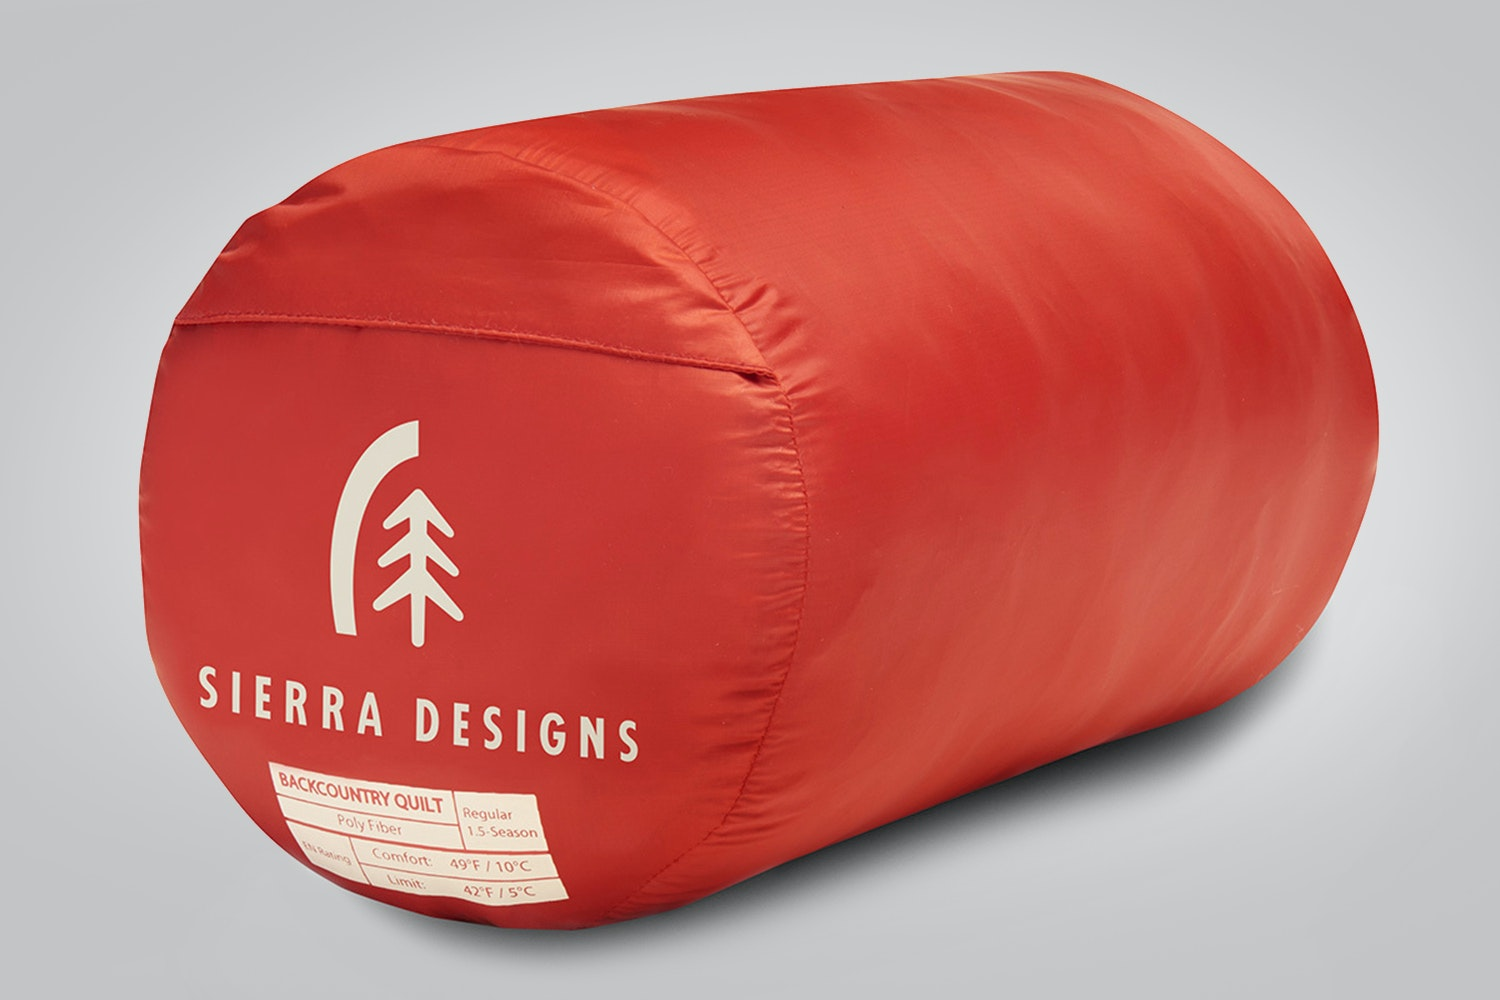 Sierra Designs Backcountry Quilts